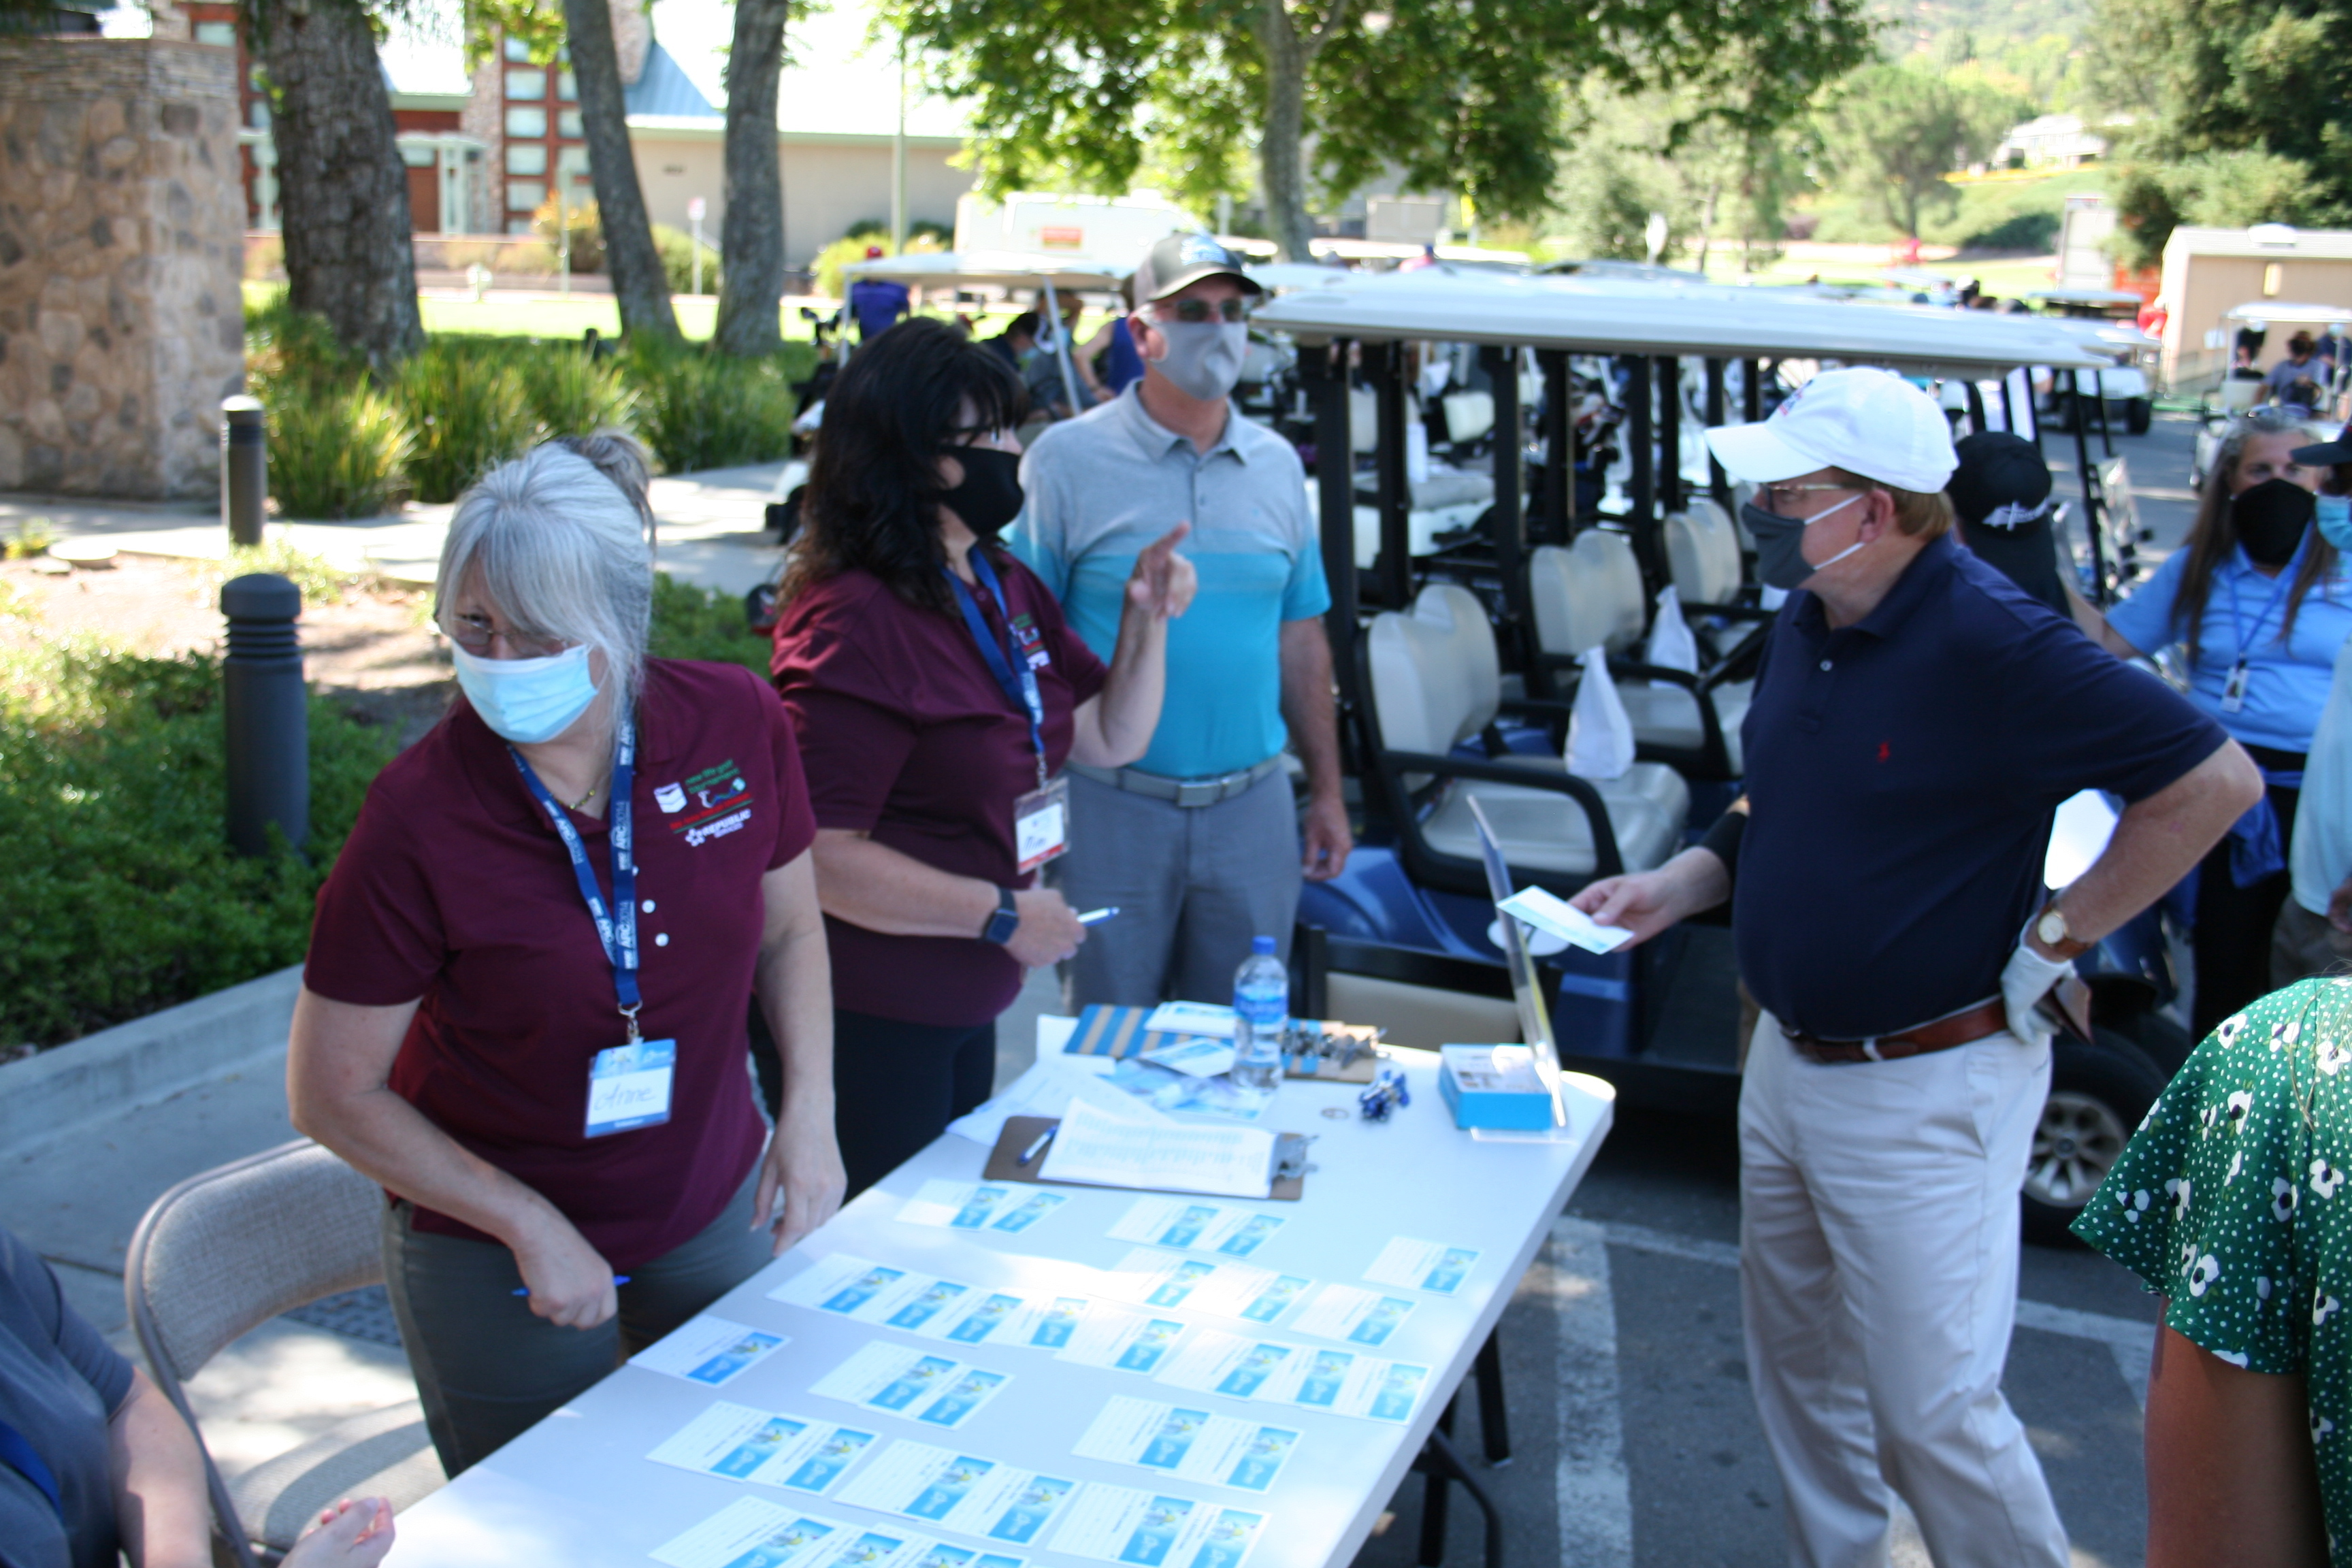 Bay Area Rescue Mission - 26th Annual New Life Golf Tournament gallery image #9